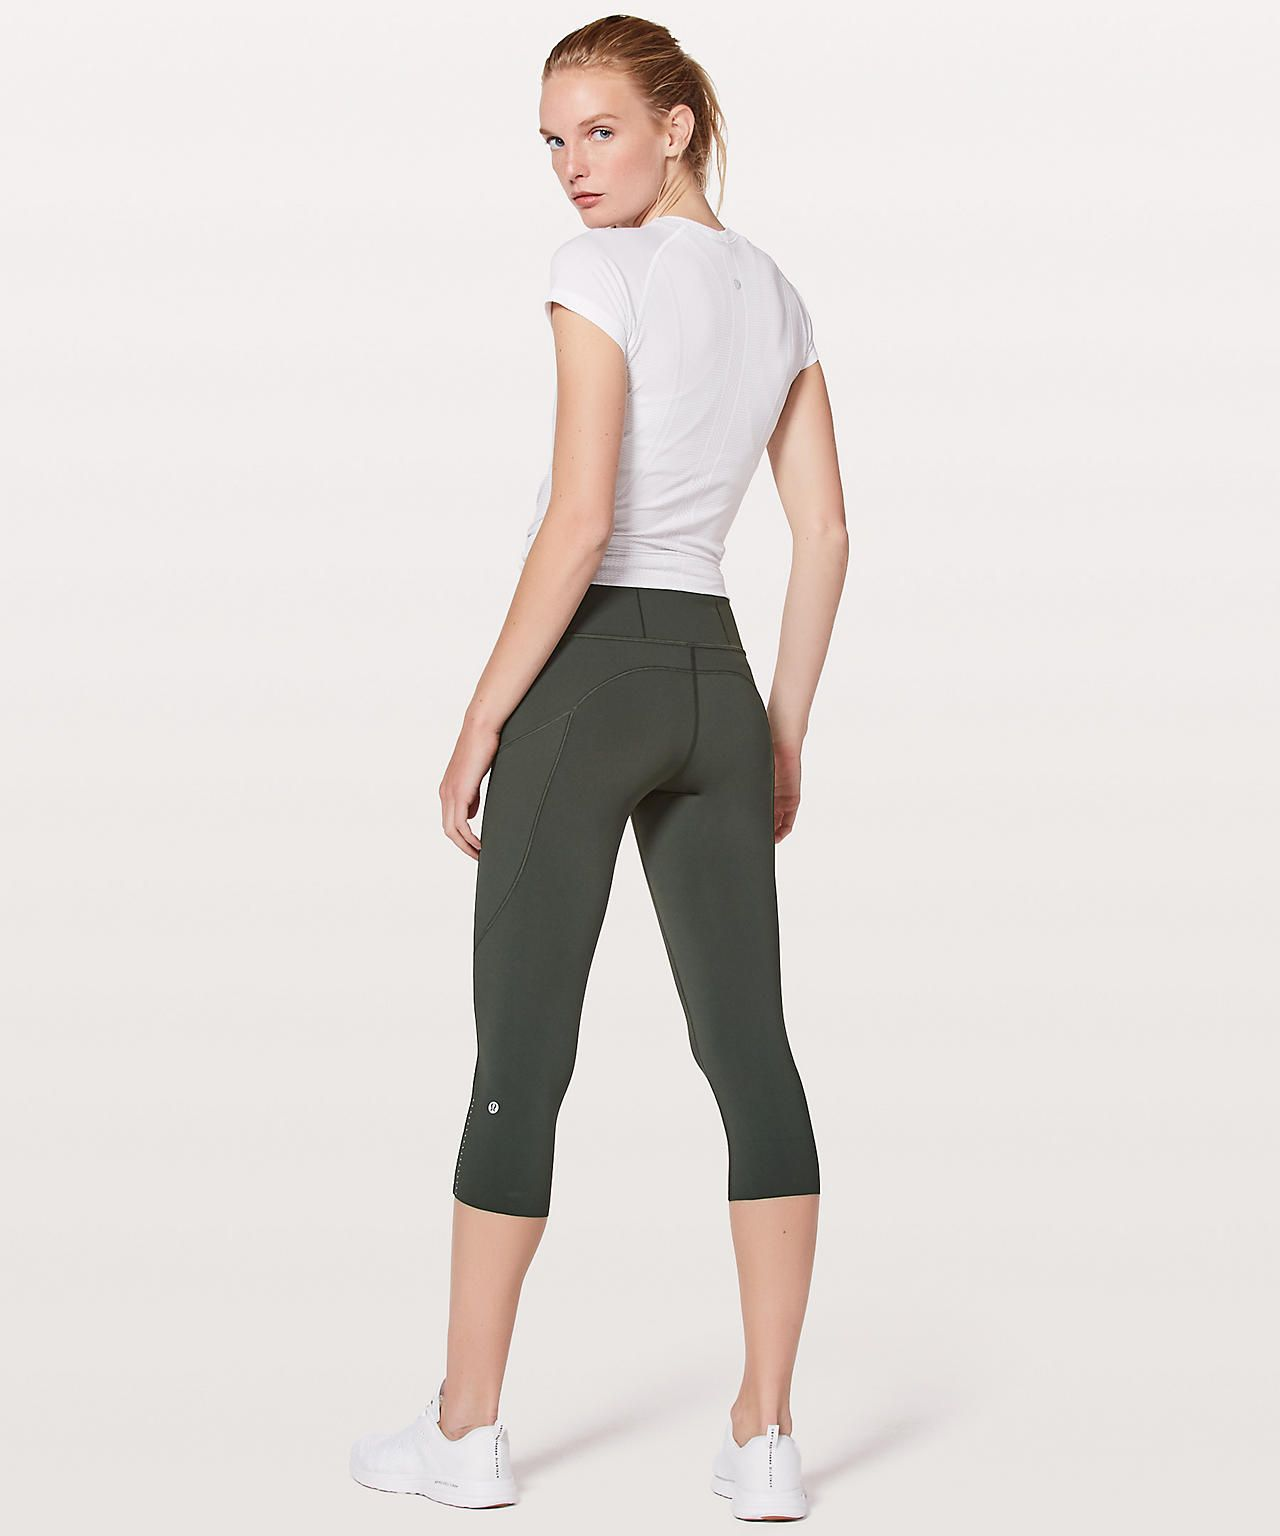 3c2ed2741e evergreen Free Crop, Lululemon Athletica, Quick Dry, Evergreen, Bermuda  Shorts, Active